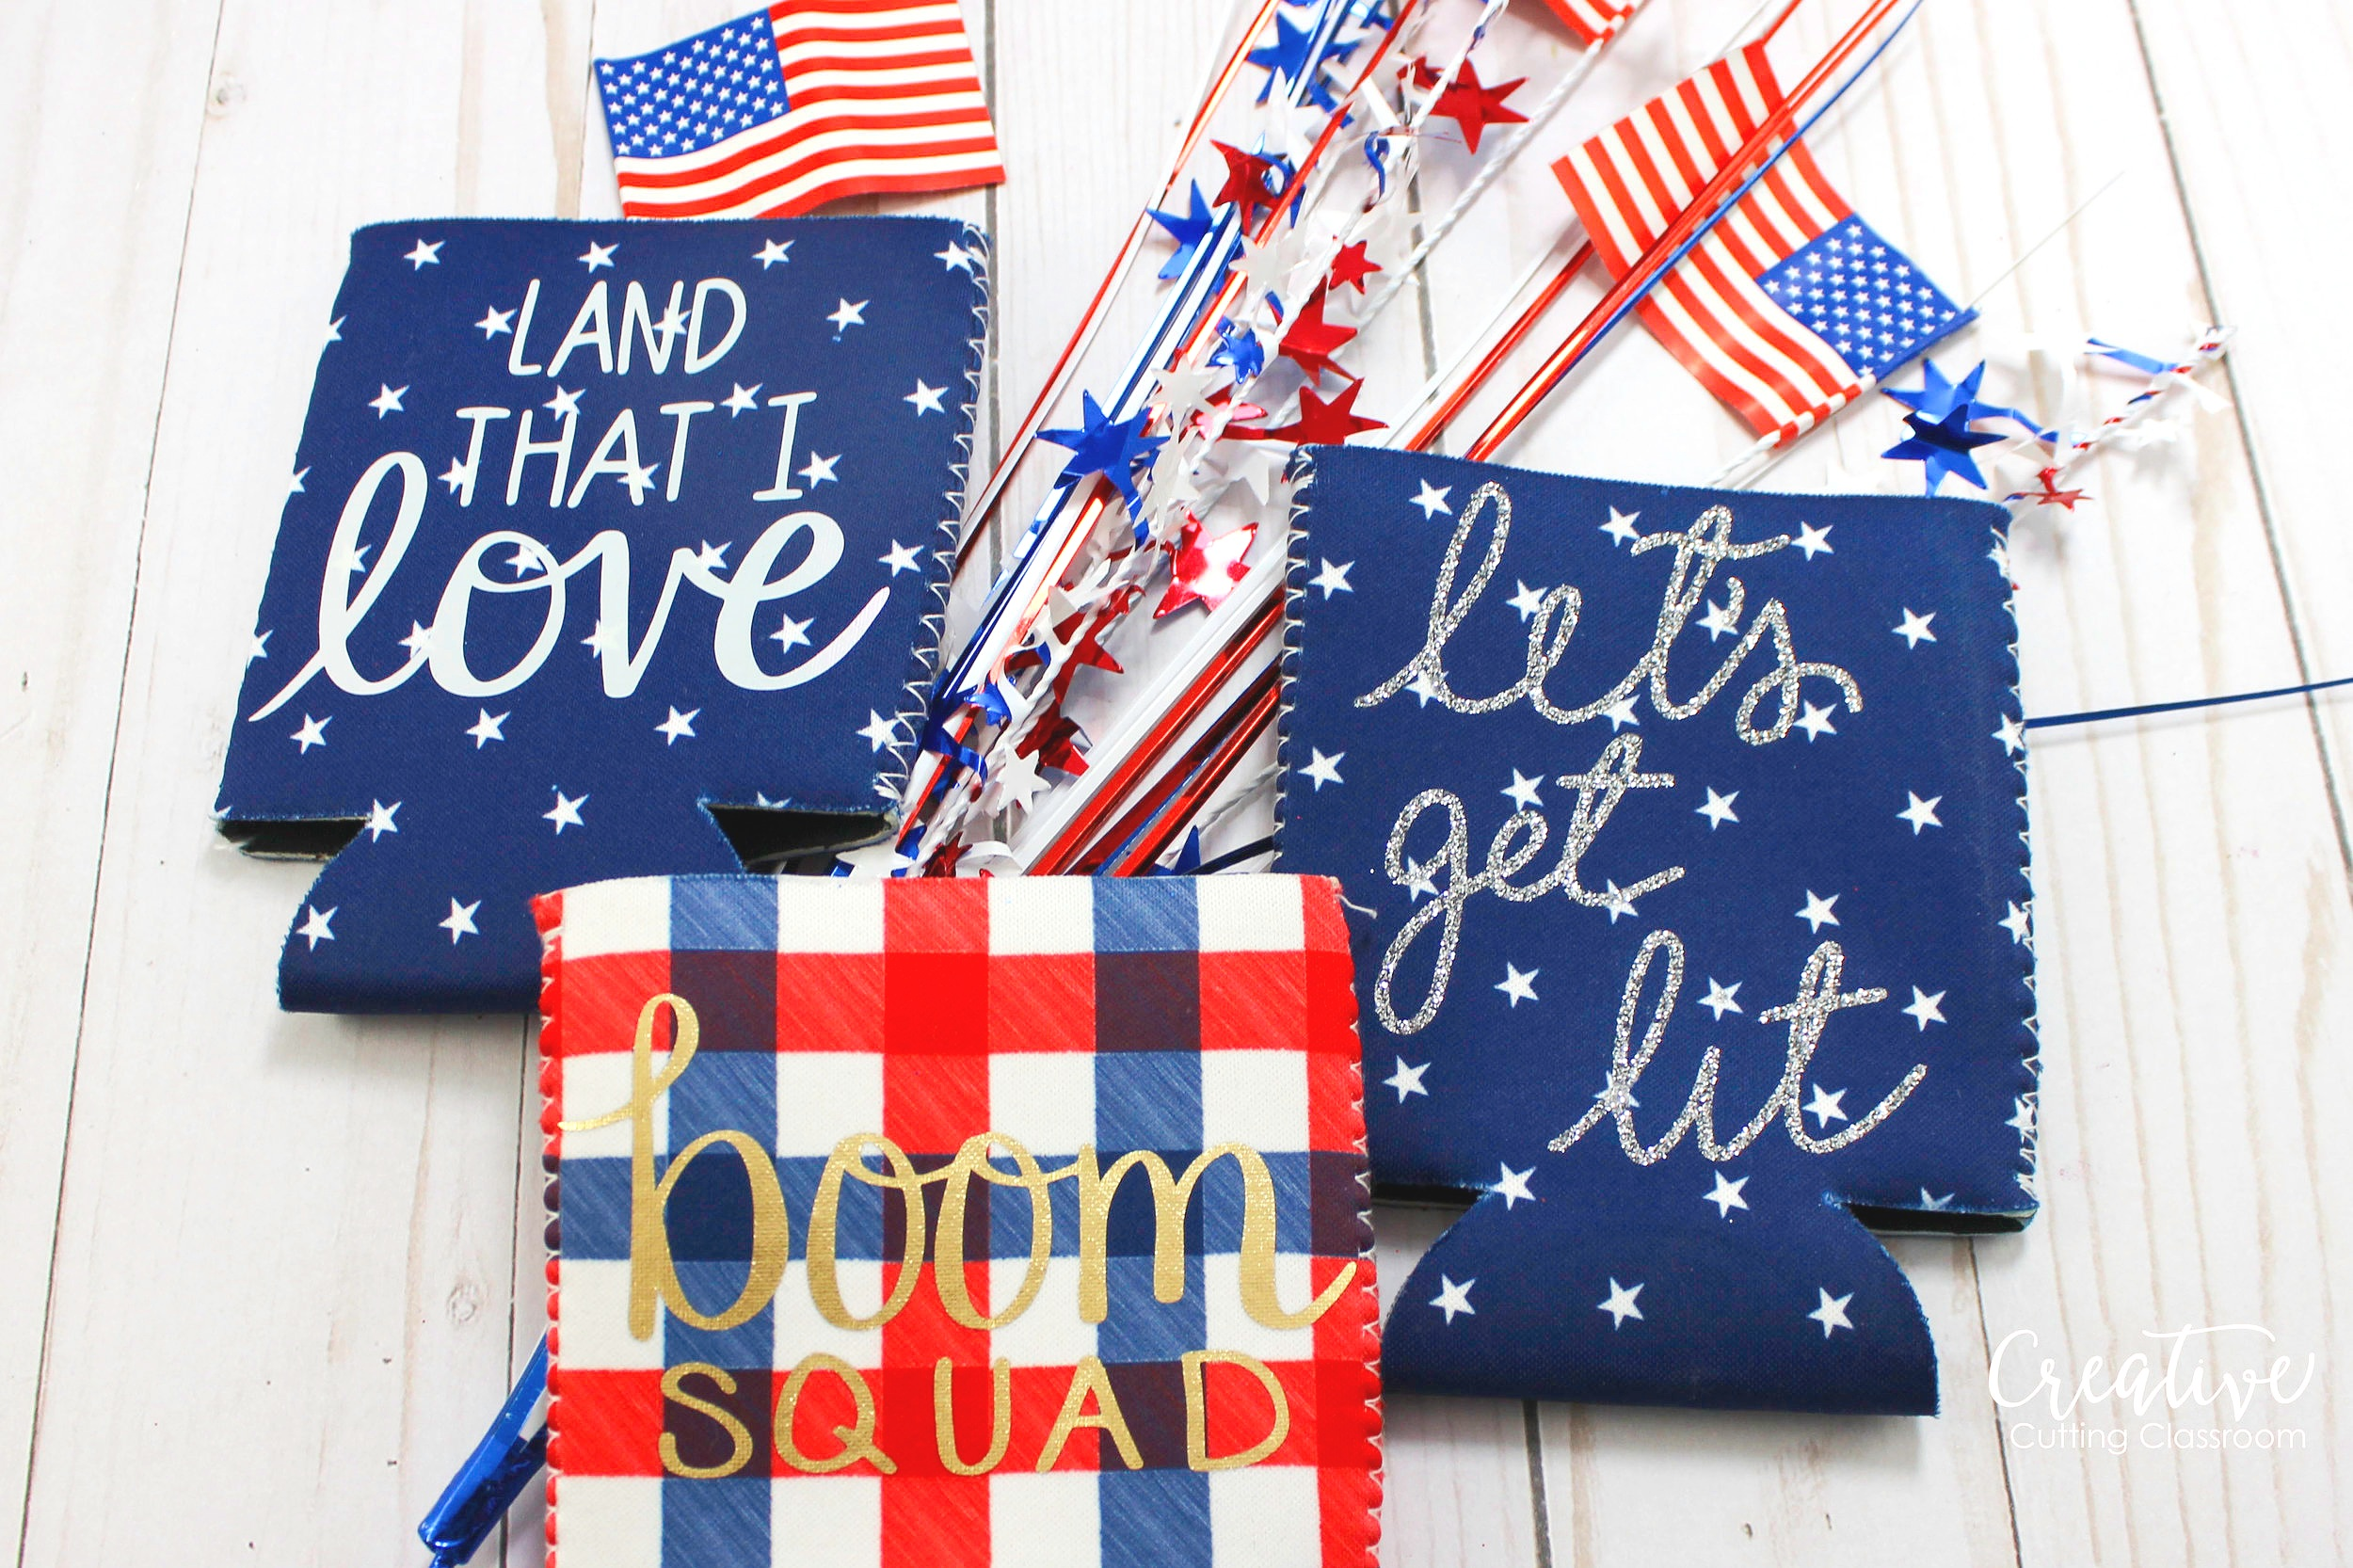 Free Hand Lettered Patriotic SVG Files to Use with Your Cricut Free SVGs | Free Patriotic SVGs | Cricut | Cricut Maker | Cricut Explore | Cricut Crafts | Patriotic Cricut Projects | July Fourth Cricut Projects | Fourth of July Cricut Projects | Cricut Projects | Cricut Project Ideas